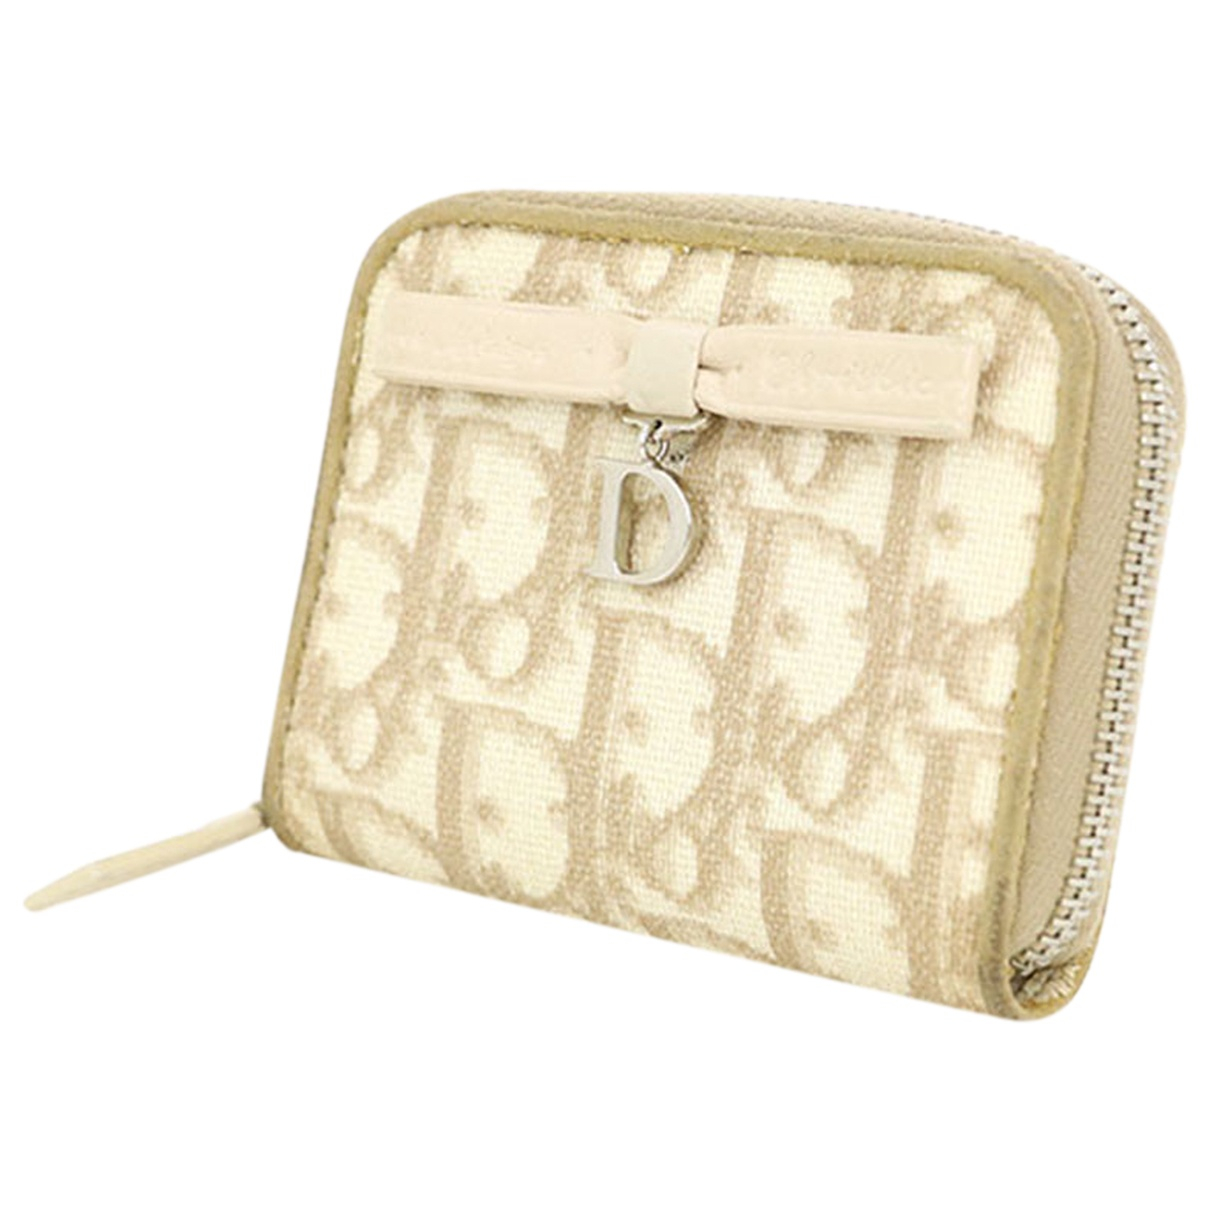 Christian Dior N Leather Purses, wallet & cases for Women N